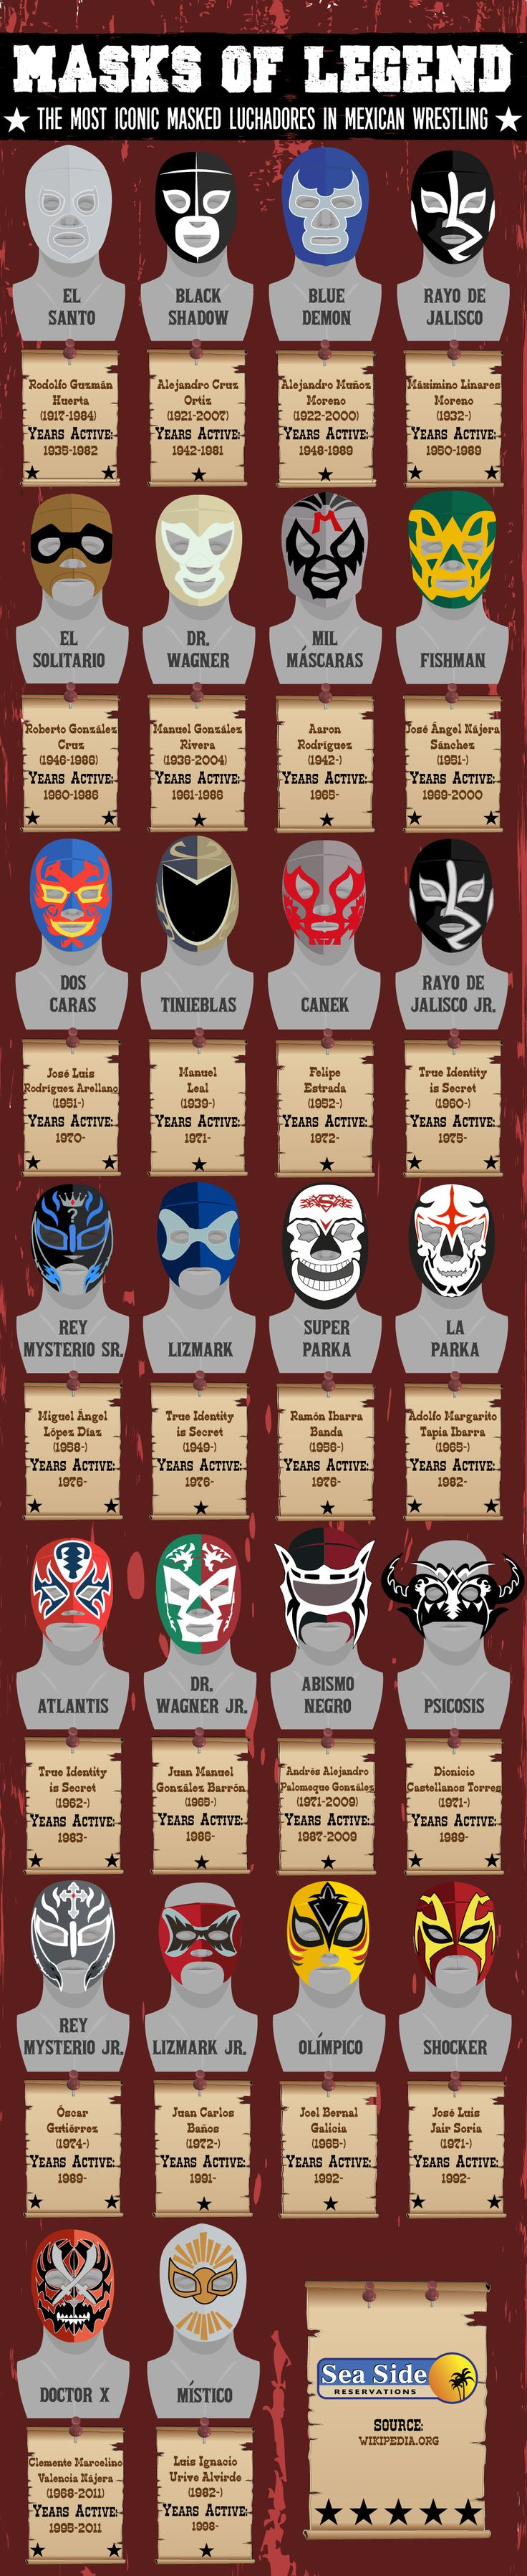 I love Mucha Lucha and Nacho Libre, but sadly, I've still never seen an actual Lucha Libre match. They look like they would be a blast!